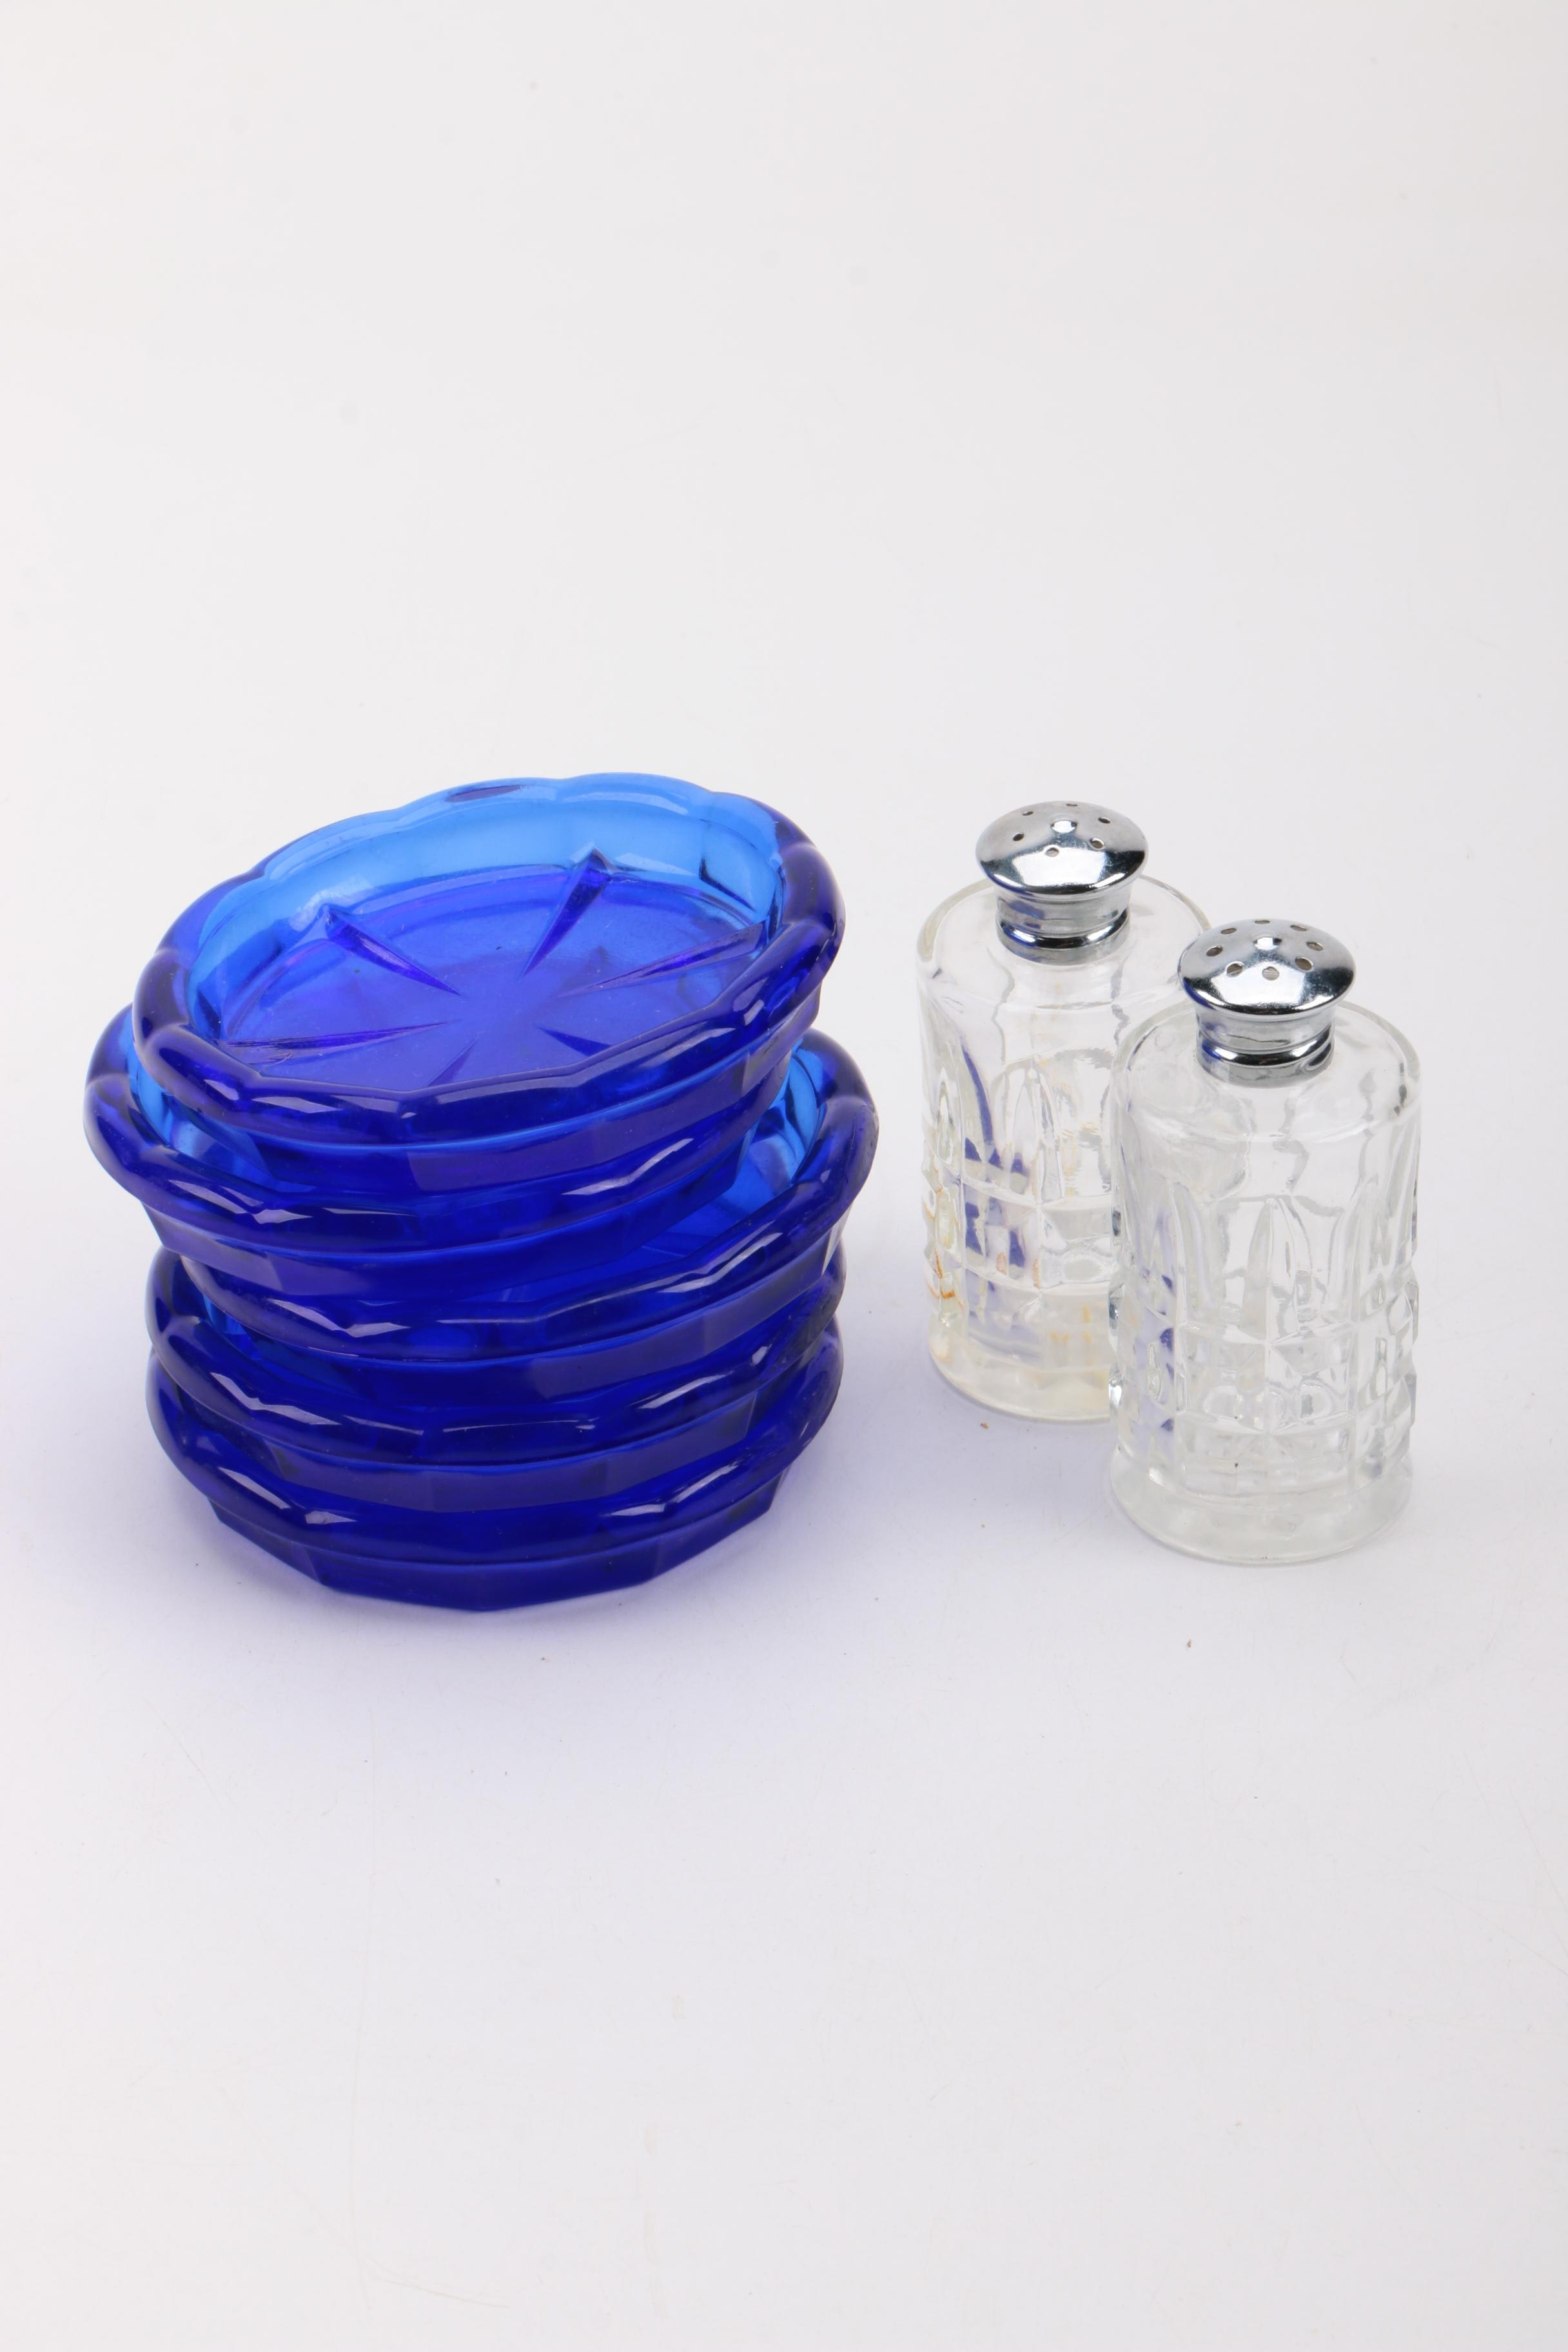 Salt and Pepper Shakers with Cobalt Blue Coasters